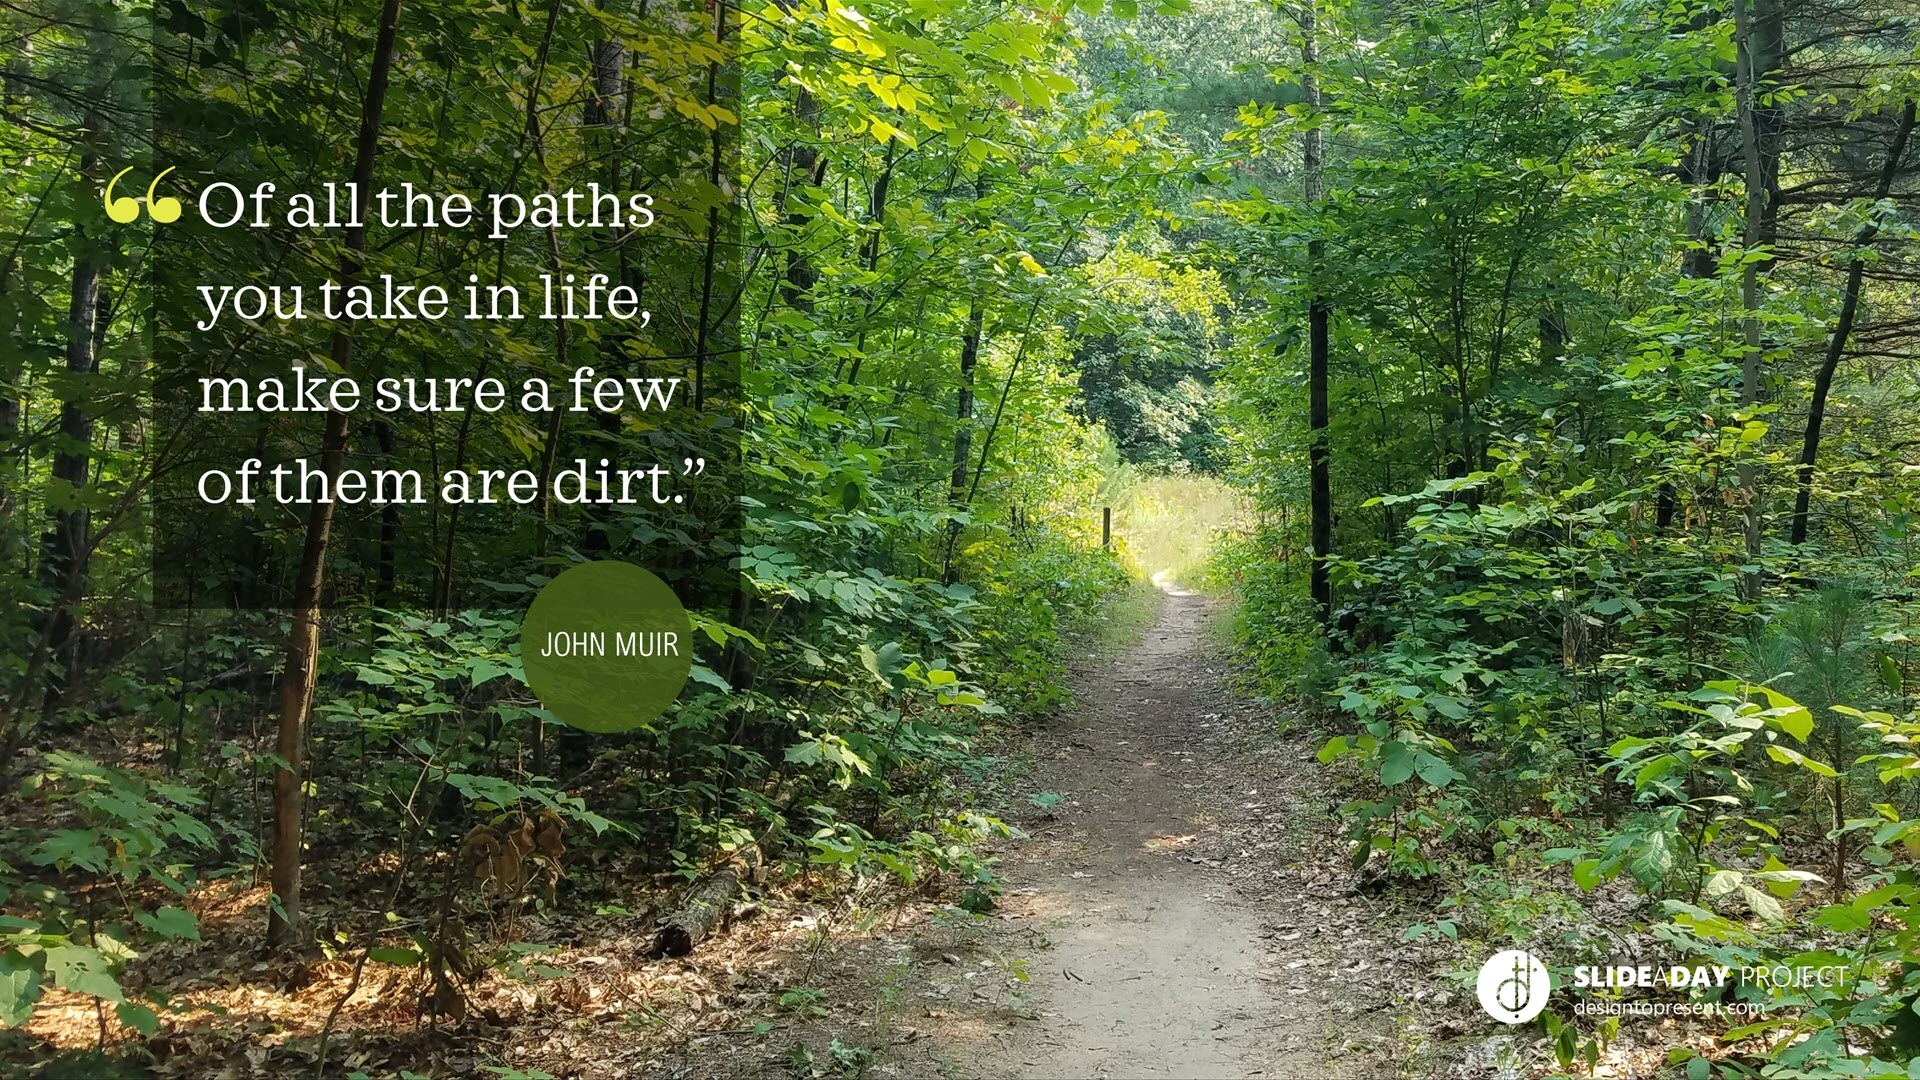 Picture of a path in the woods with John Muir quote